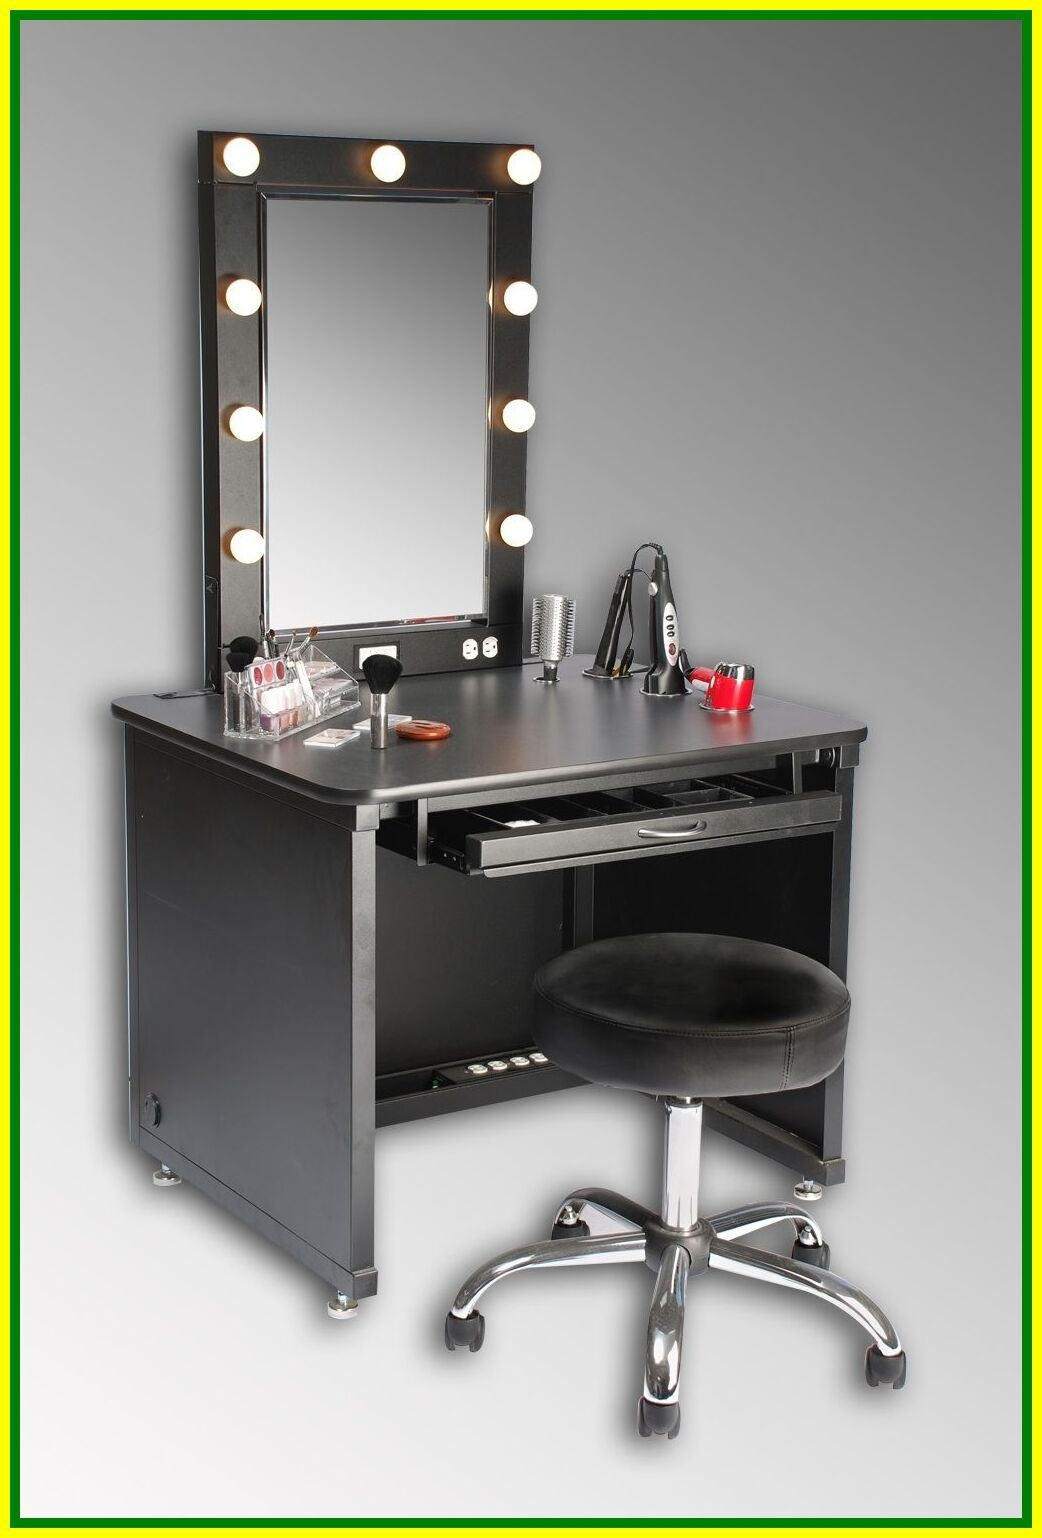 Superb Hollywood Style For A Bedroom Vanity Table Setting, Made Out Of A Small  Desk, Crafted Out Of Black Painted Wood, With A Matching Footstool Made Out  Of ...